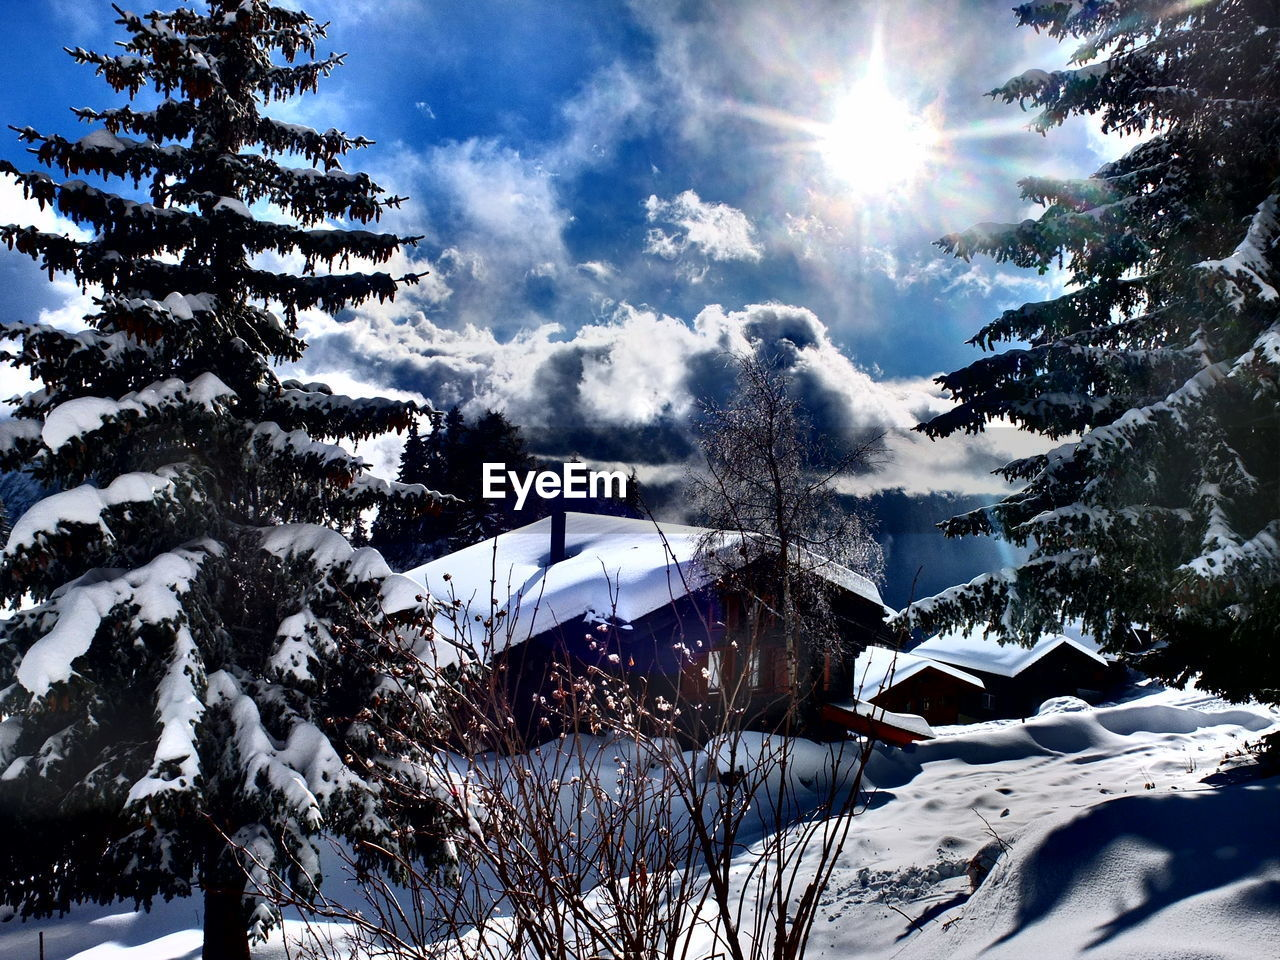 snow, winter, cold temperature, beauty in nature, nature, sunlight, weather, tranquility, tree, sunbeam, sun, scenics, tranquil scene, outdoors, day, no people, sky, mountain, landscape, snowcapped mountain